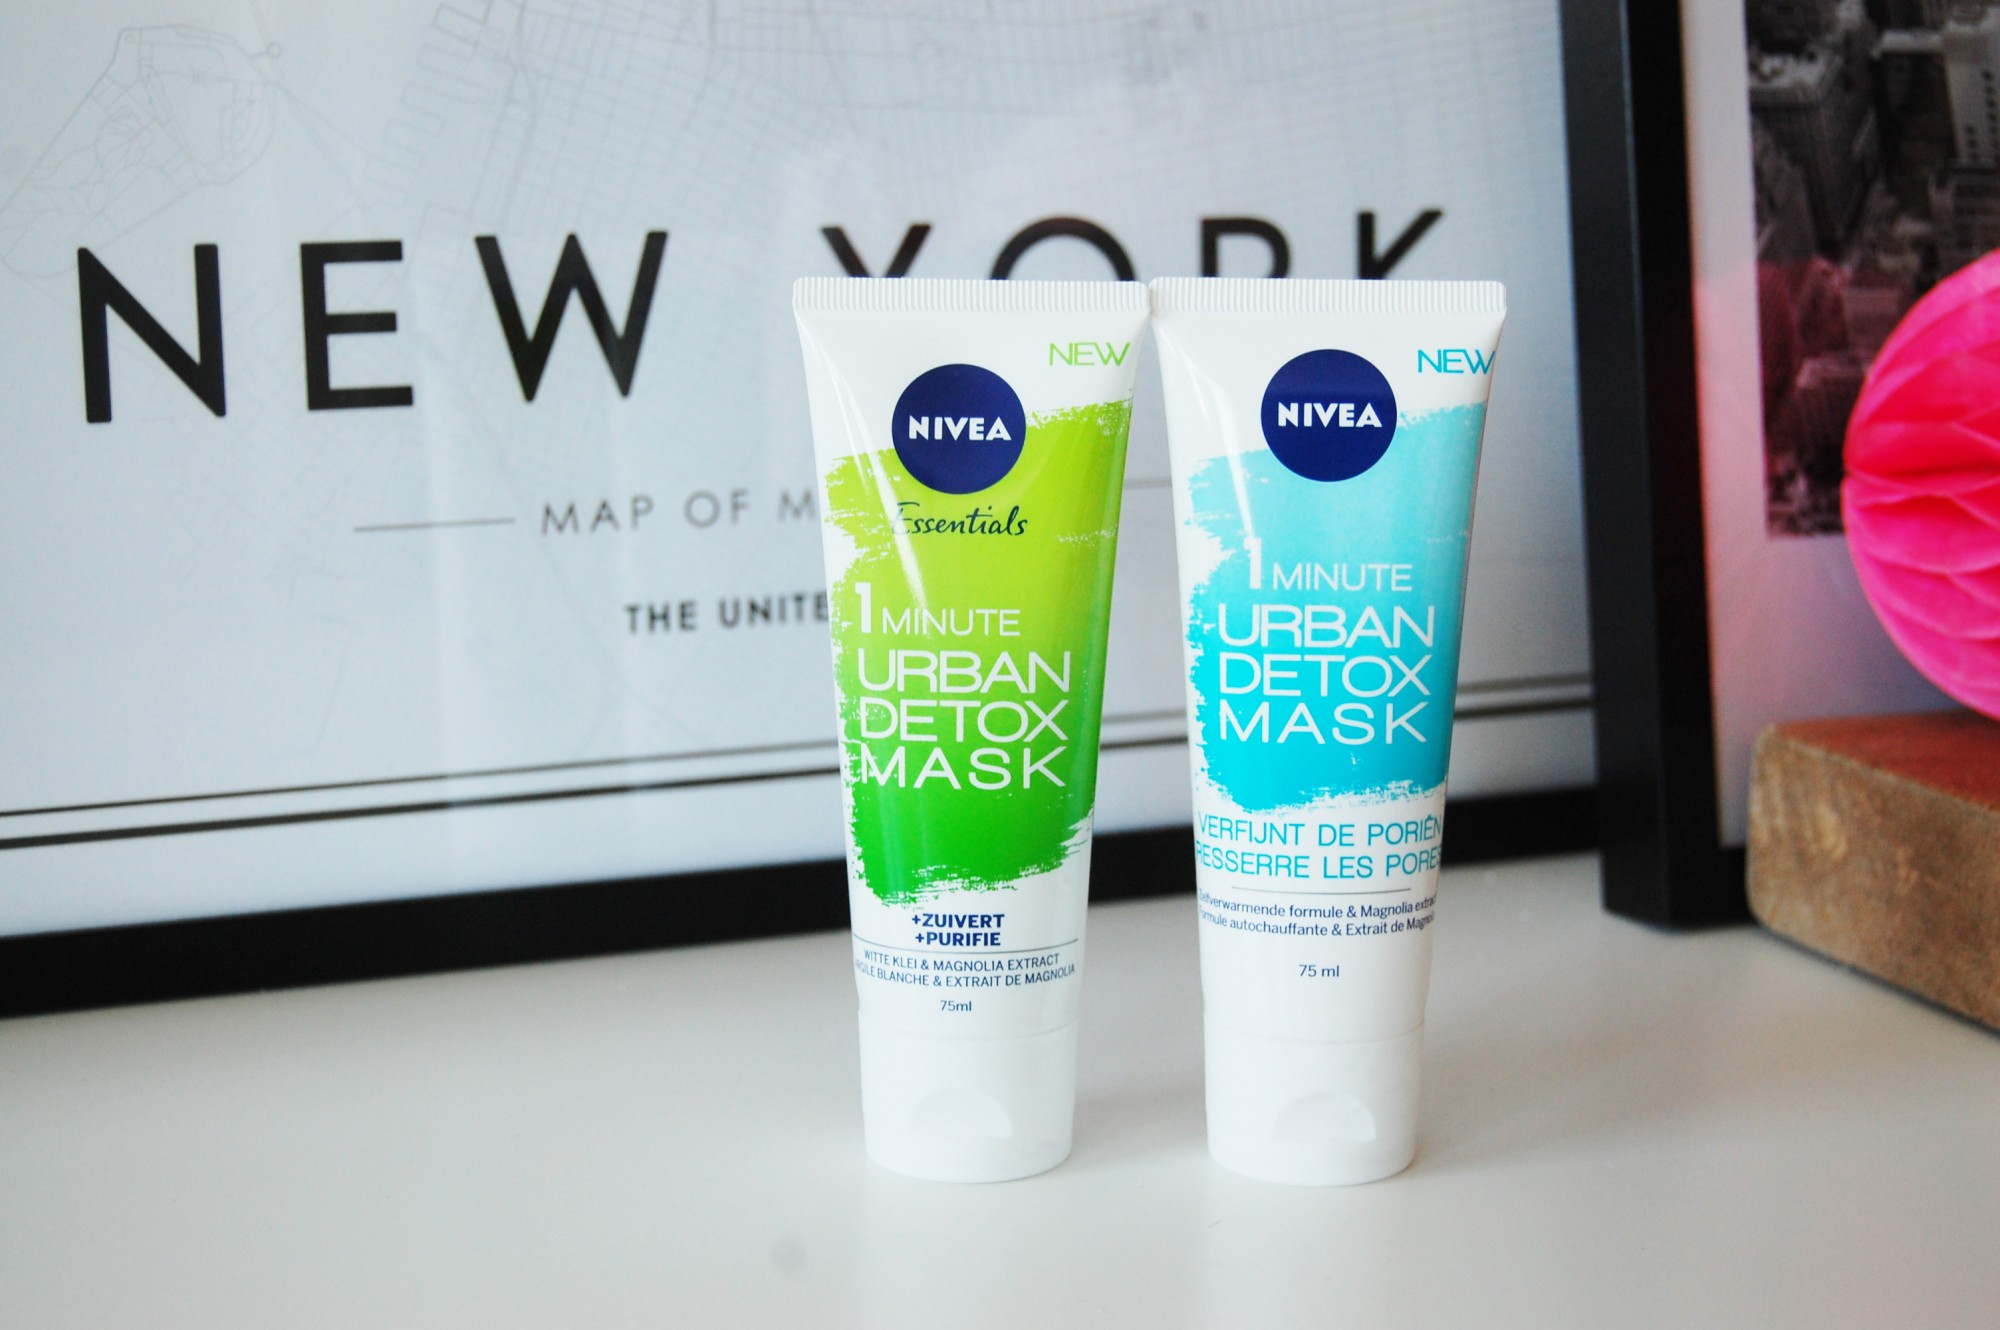 Nivea 1 Minute Urban Detox Mask